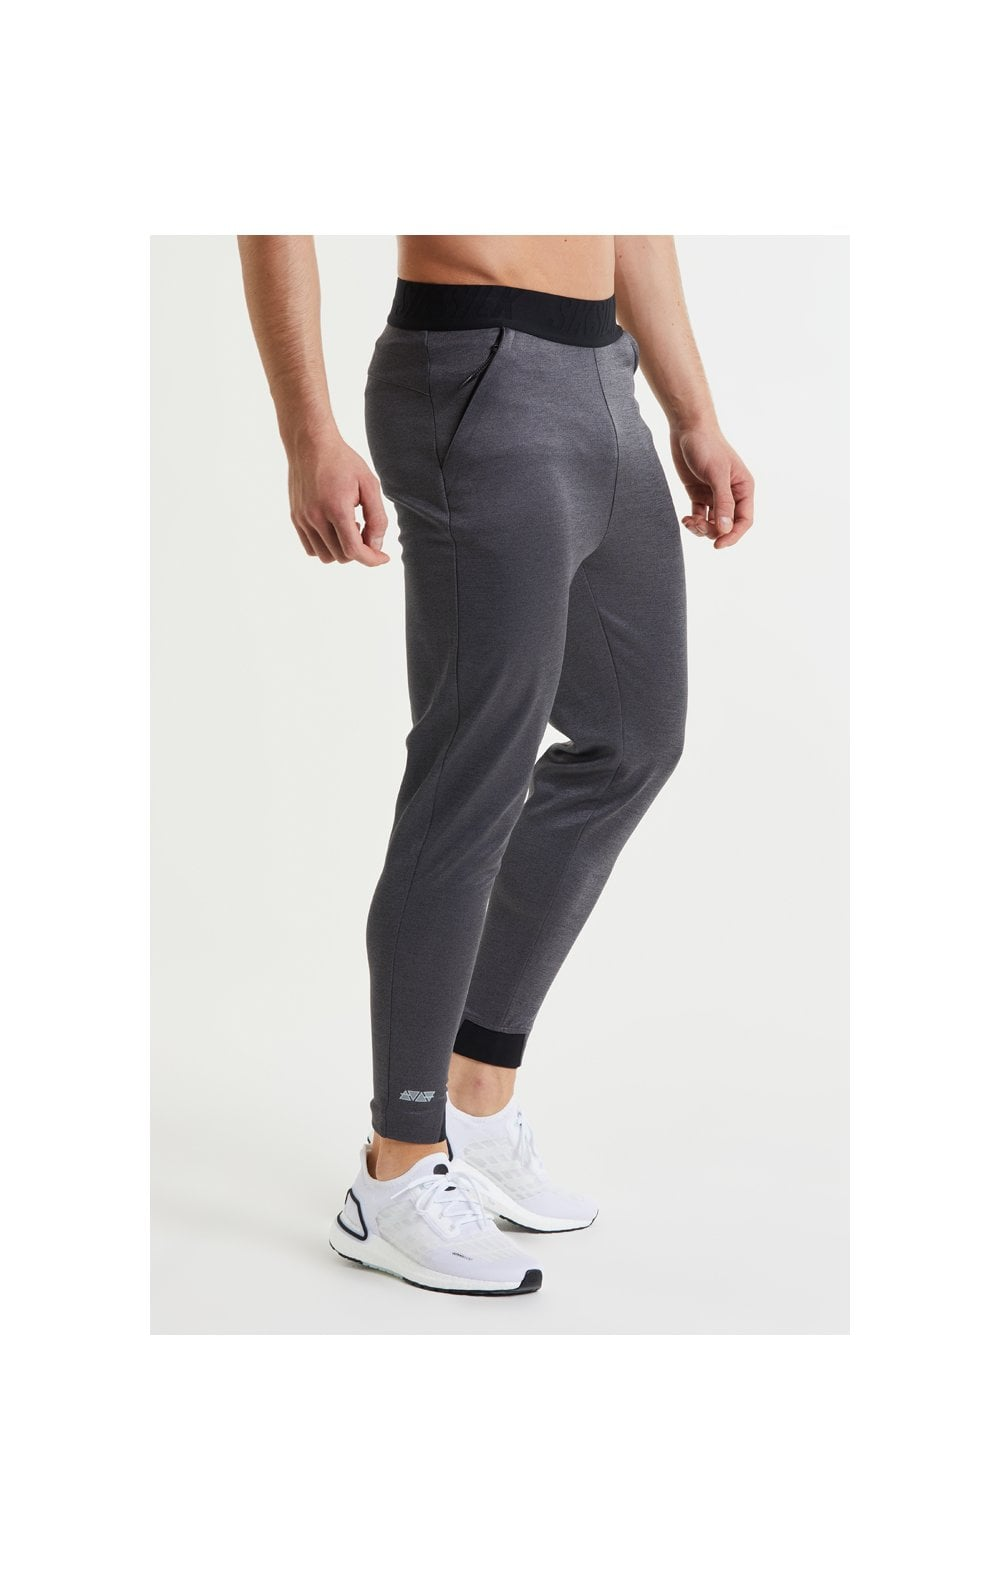 Load image into Gallery viewer, SikSilk Rapid Pants – Charcoal Marl (2)